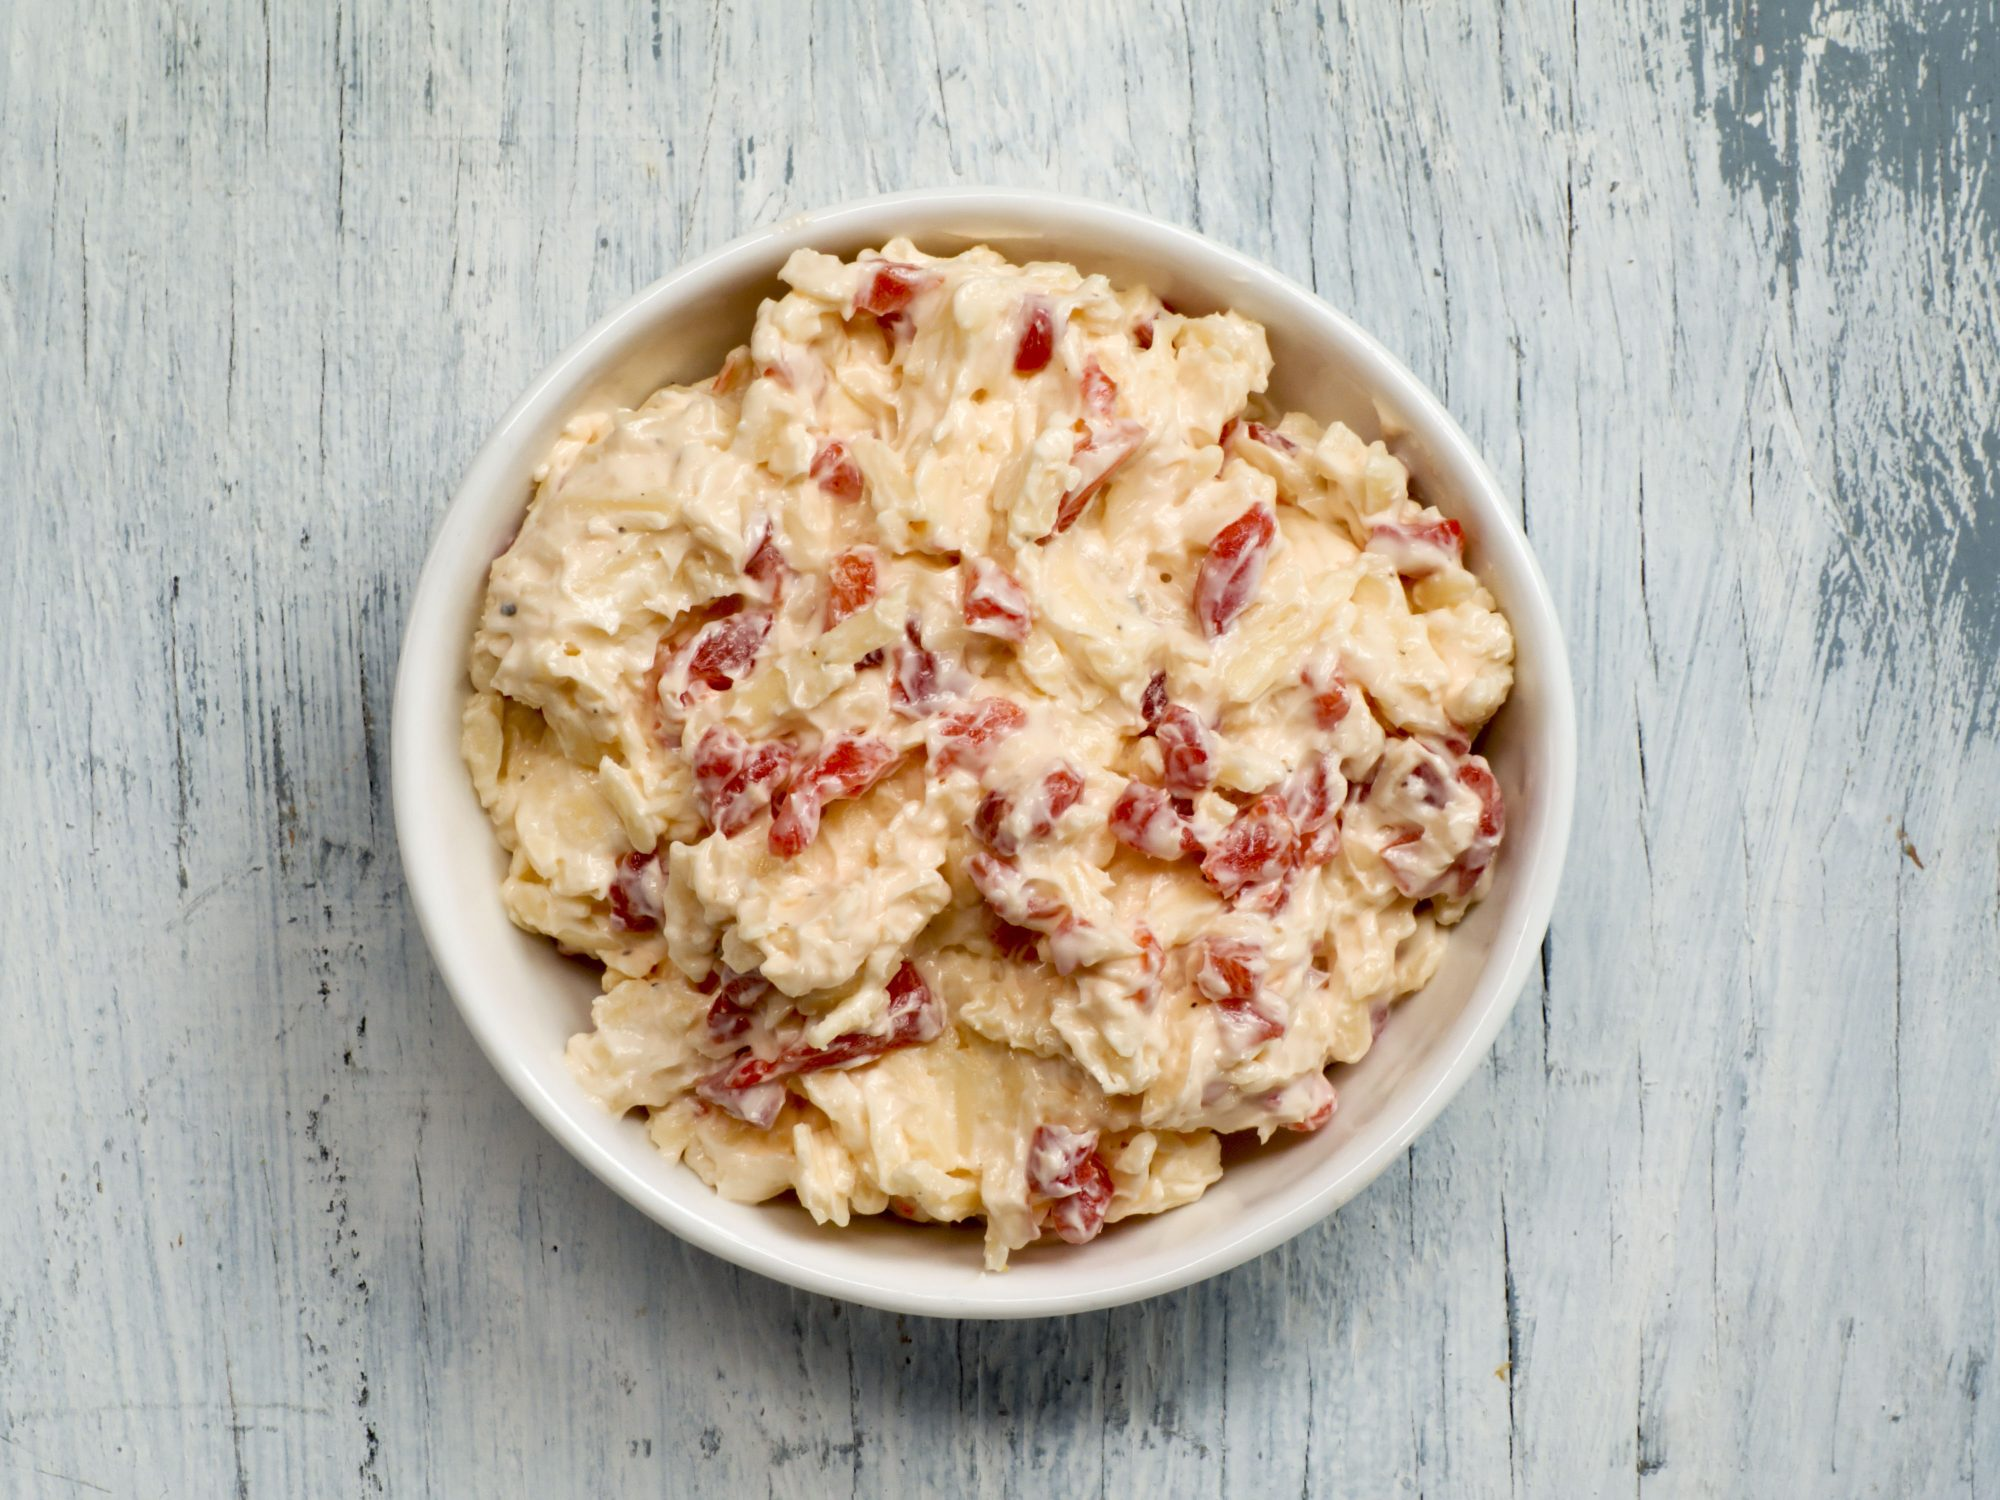 Super Simple Pimiento Cheese image